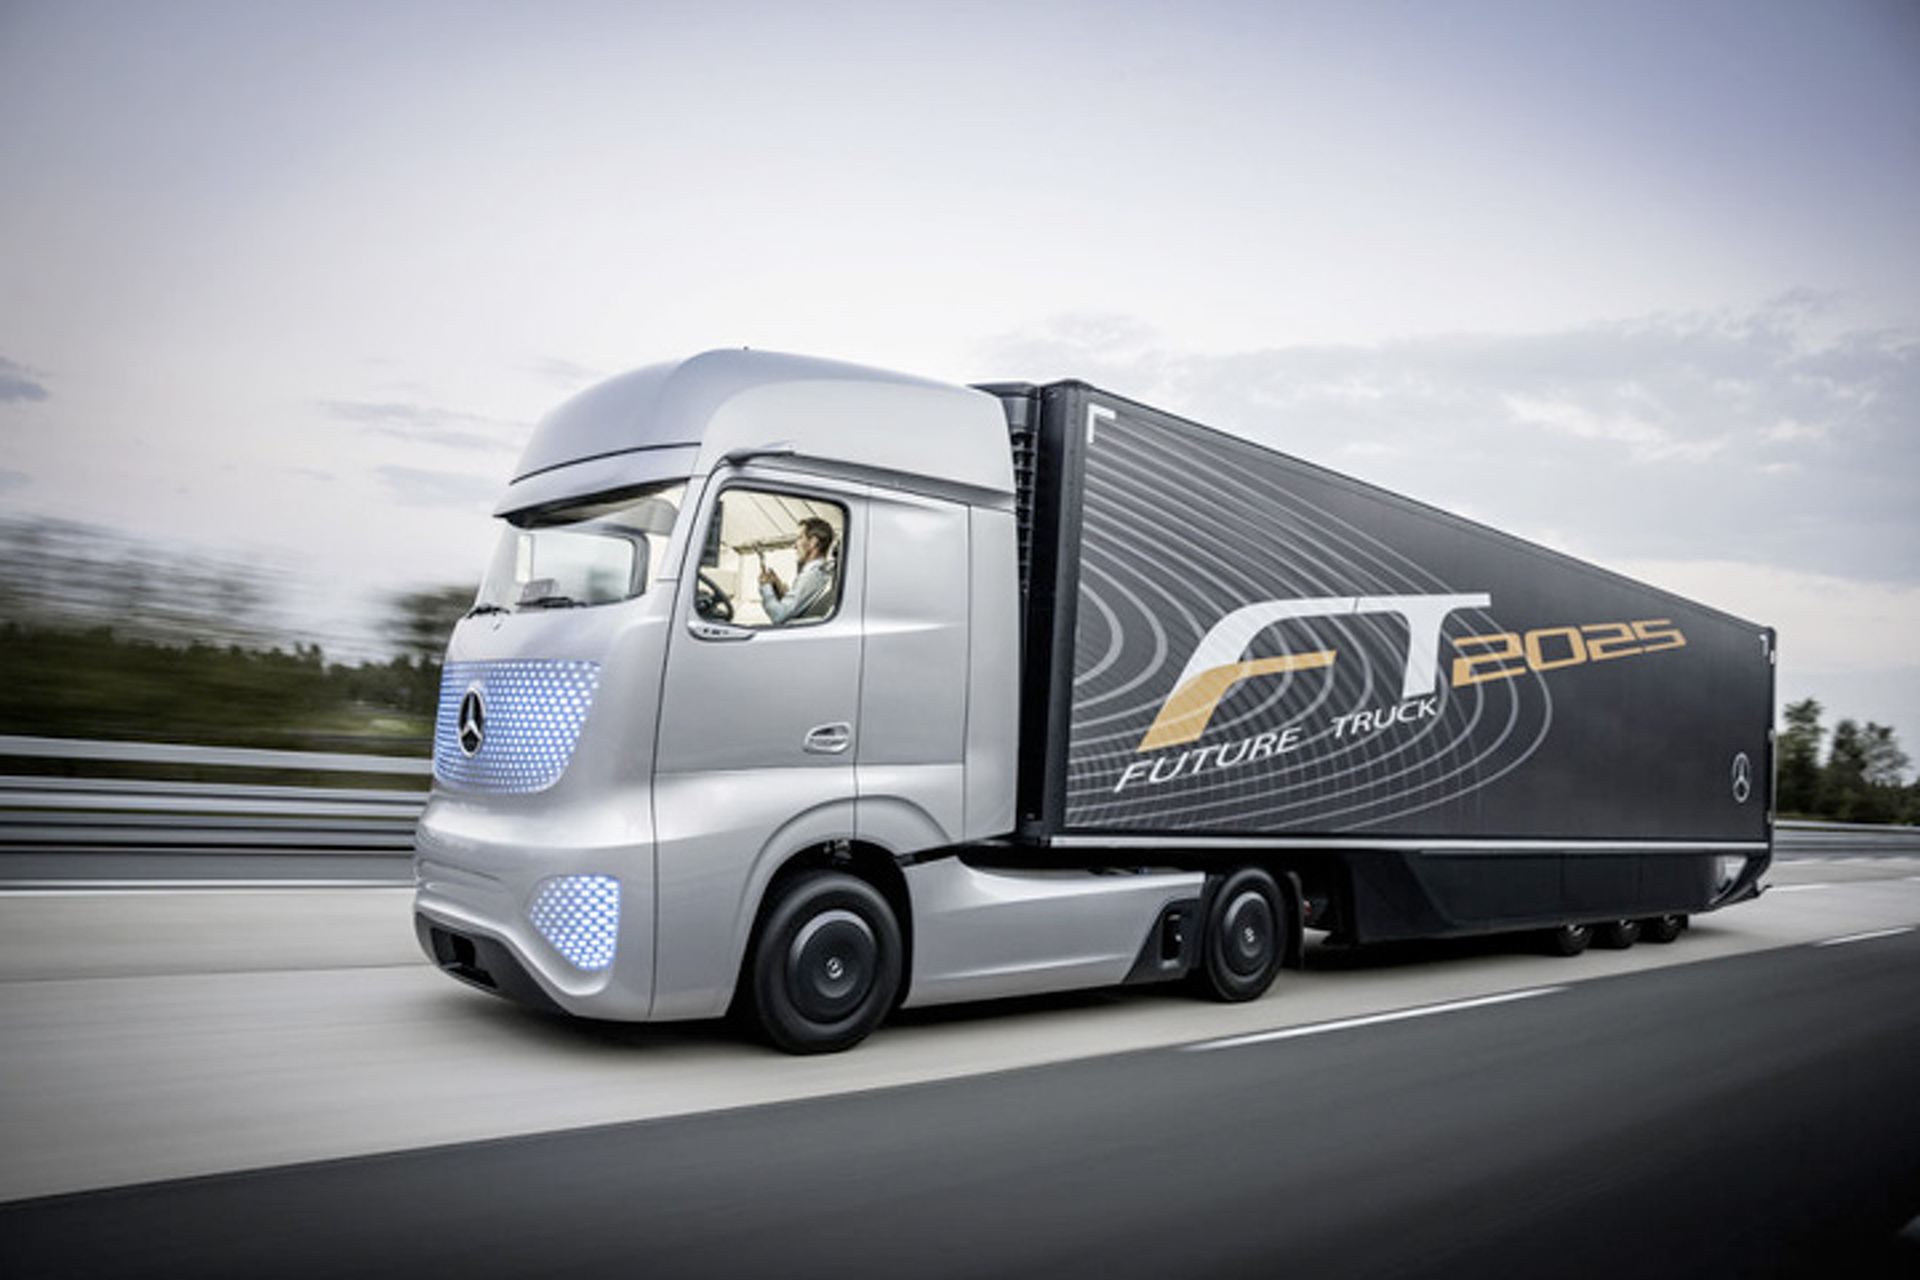 Watch Mercedes Future Truck 2025 Autonomously Go for a Spin